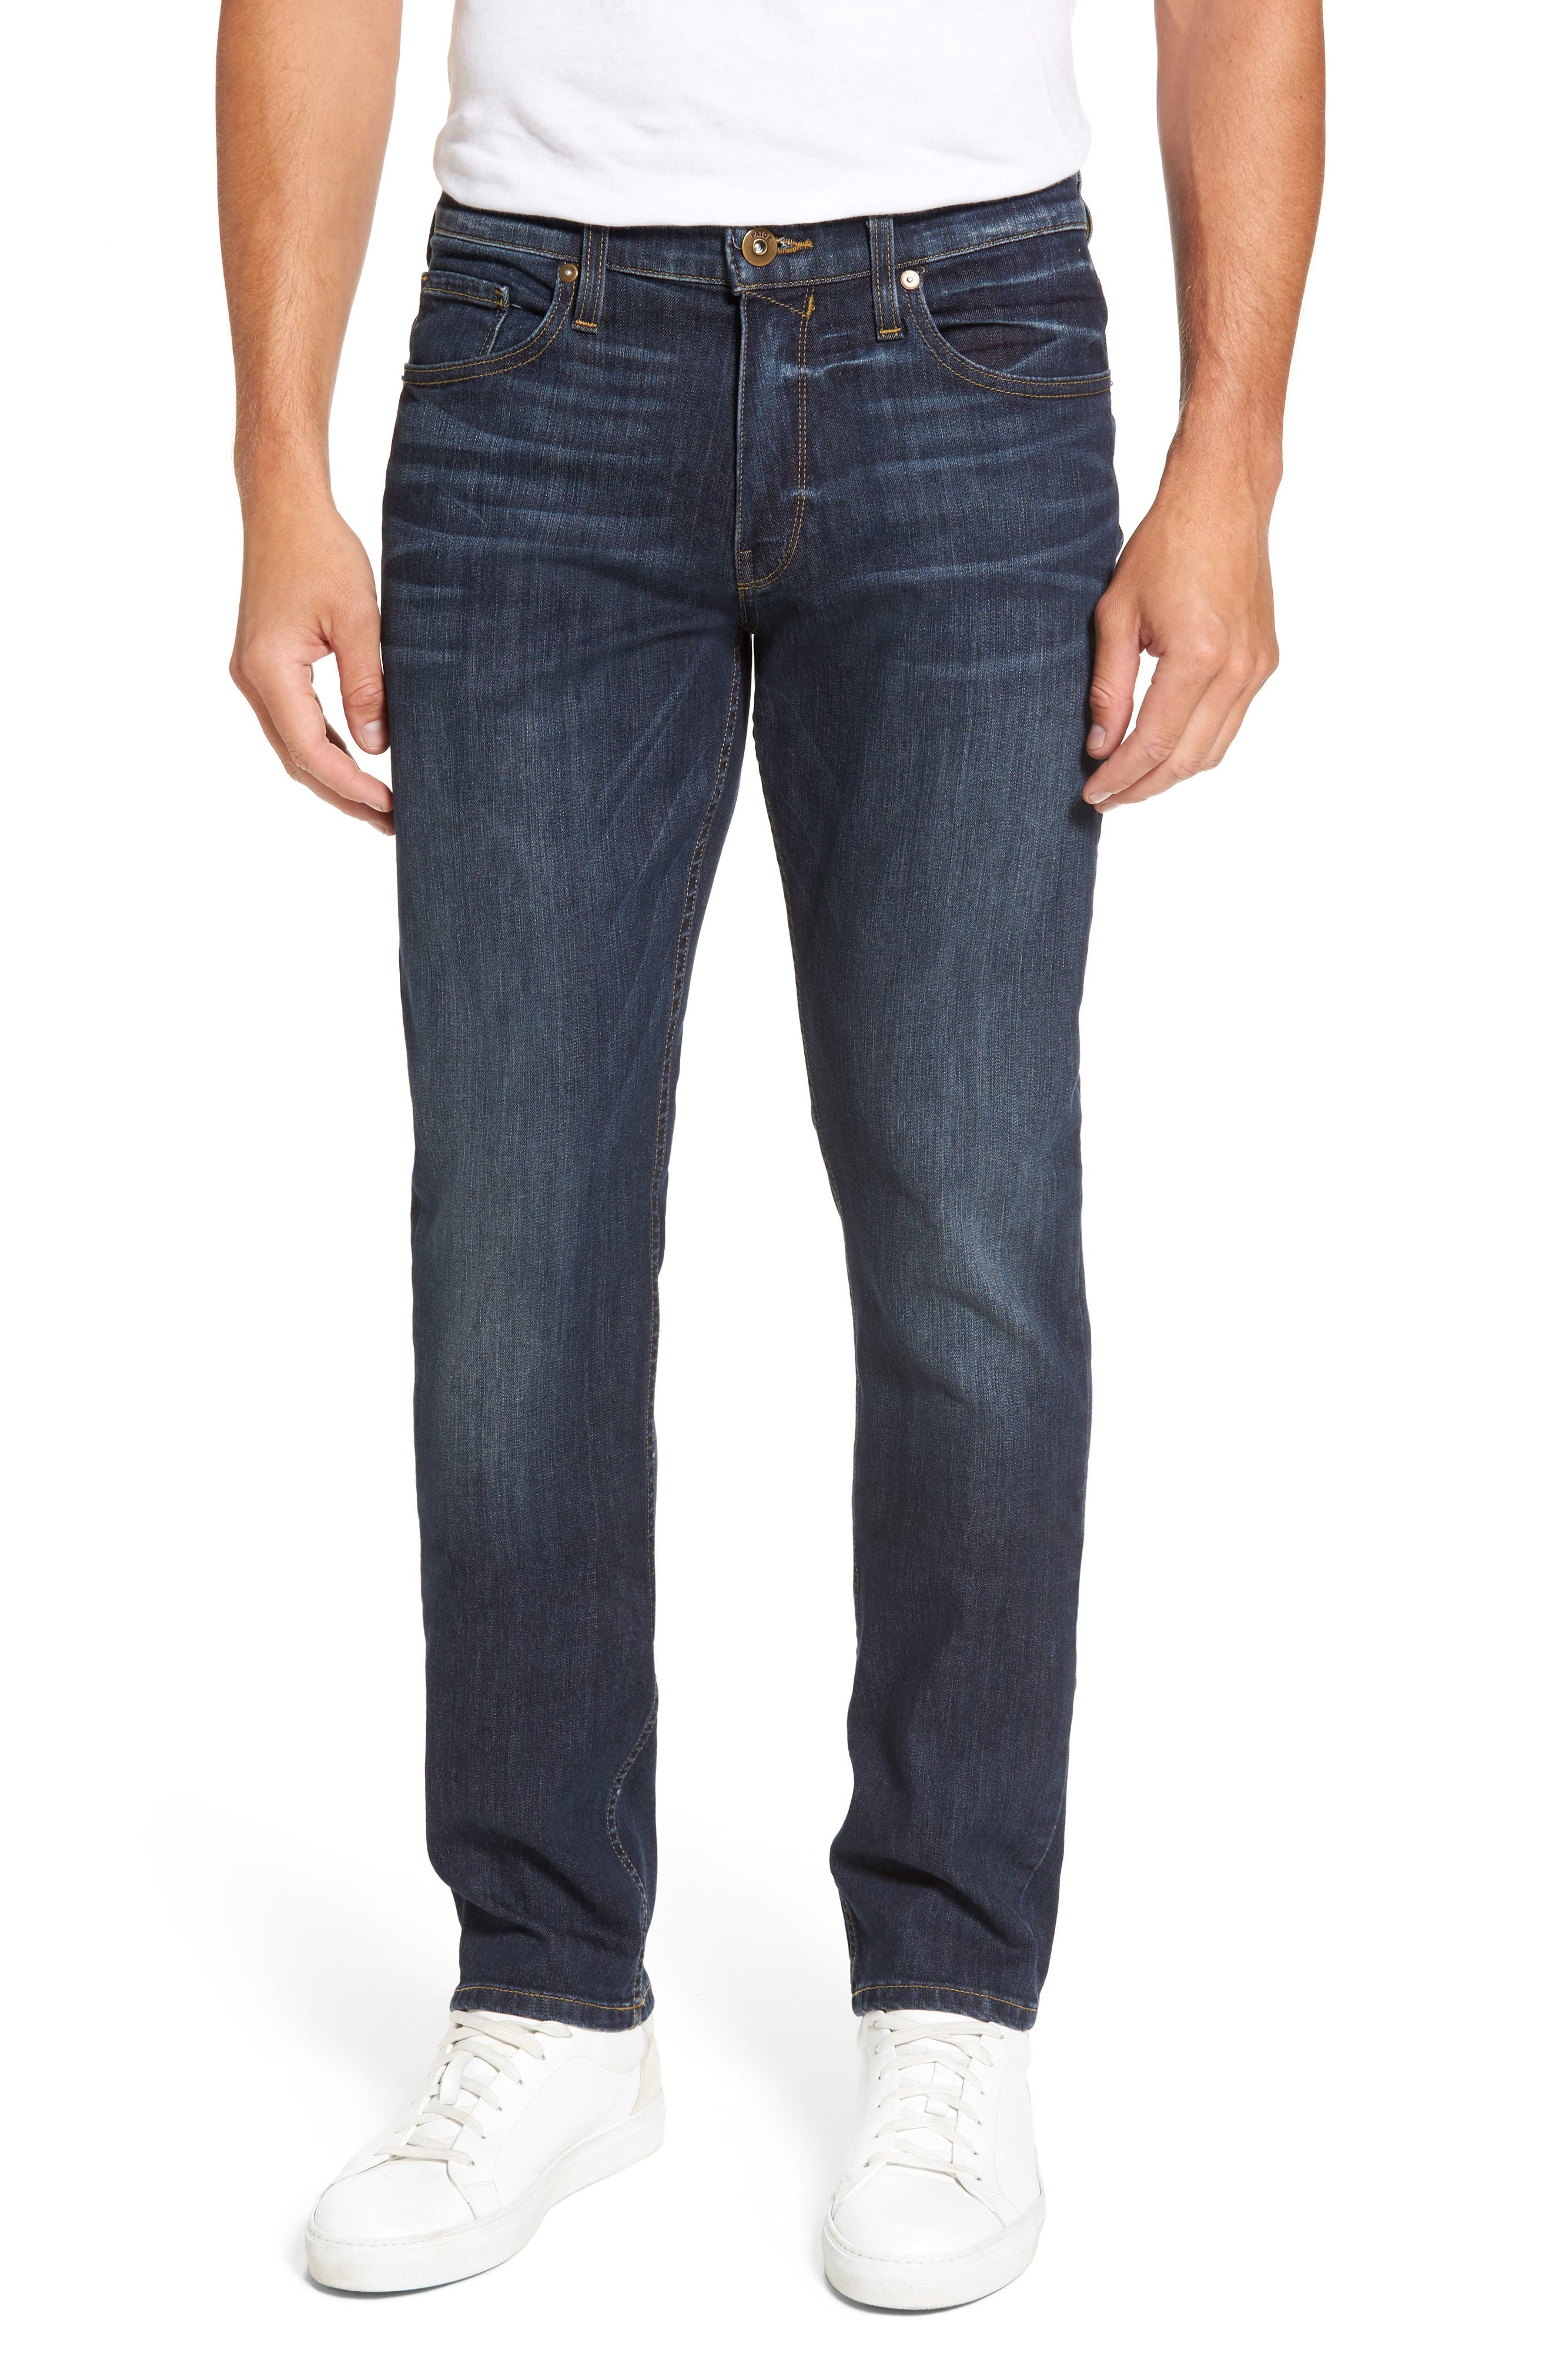 Legacy - Federal Slim Straight Leg Jeans,                             Main thumbnail 1, color,                             JERRY